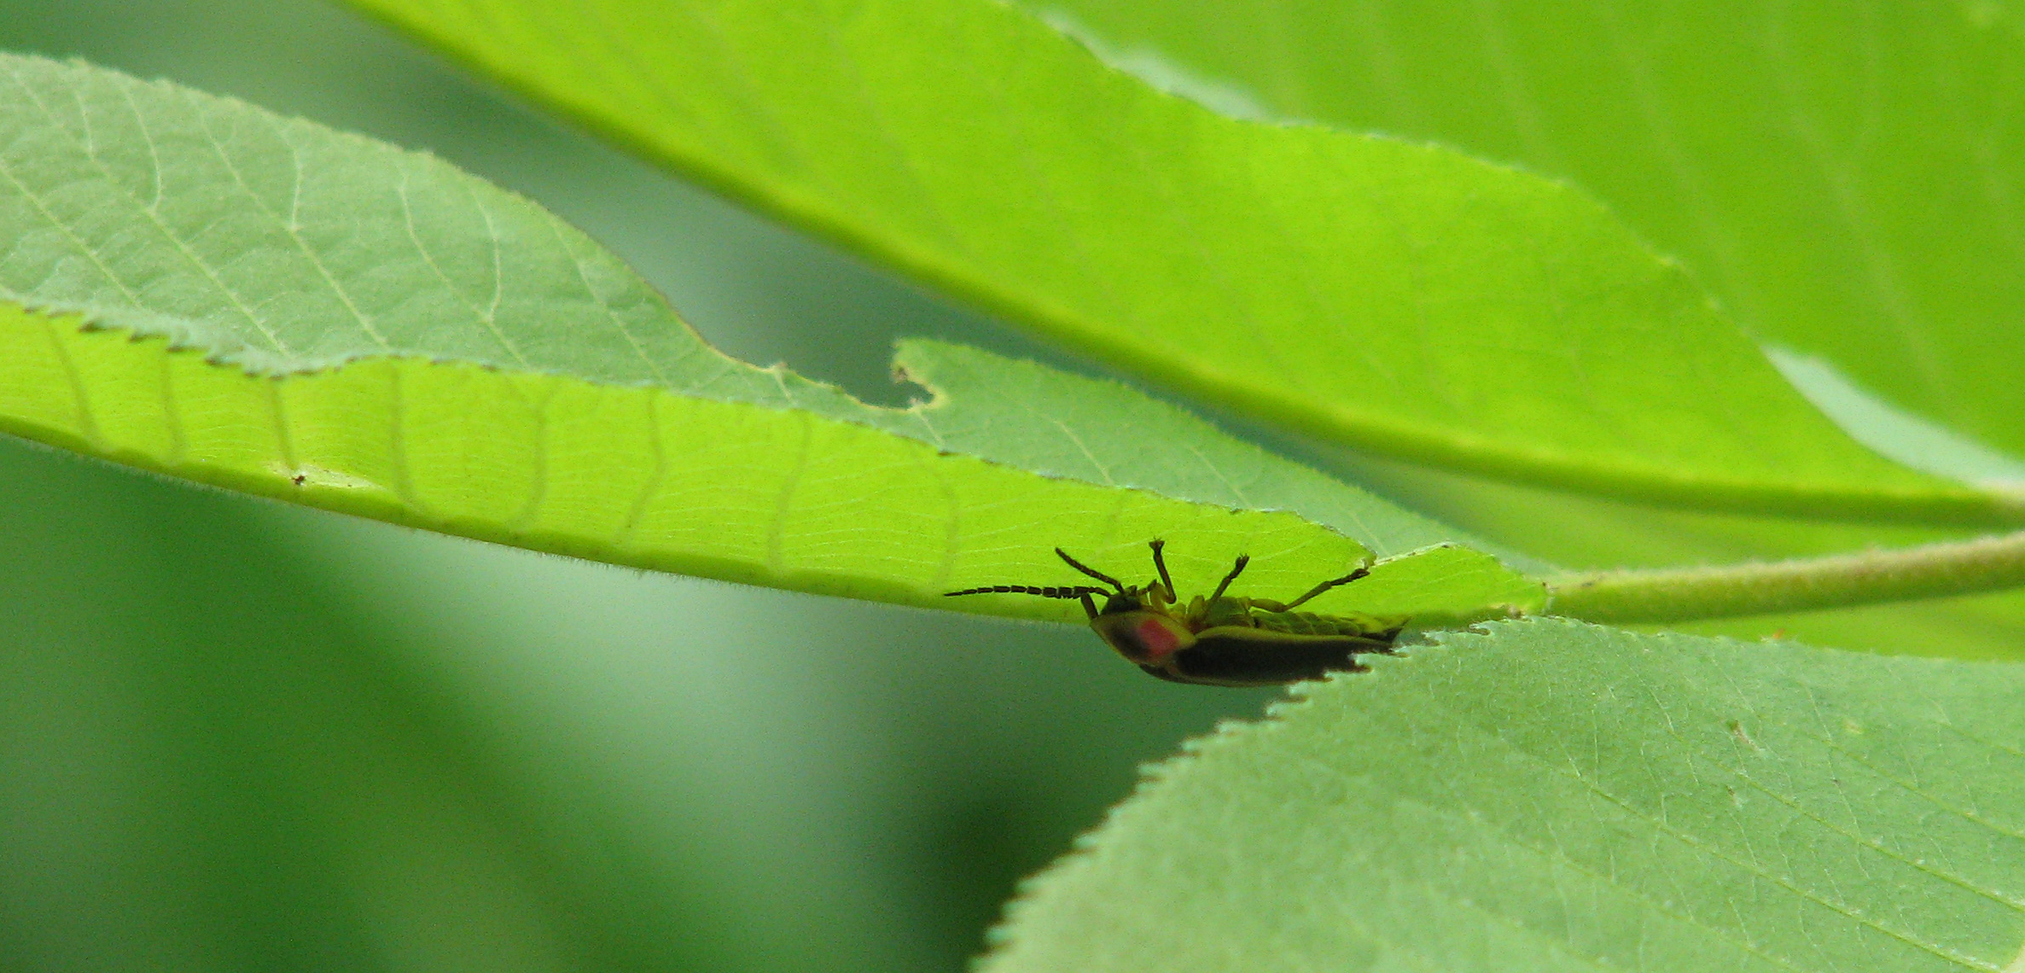 Firefly on leaves